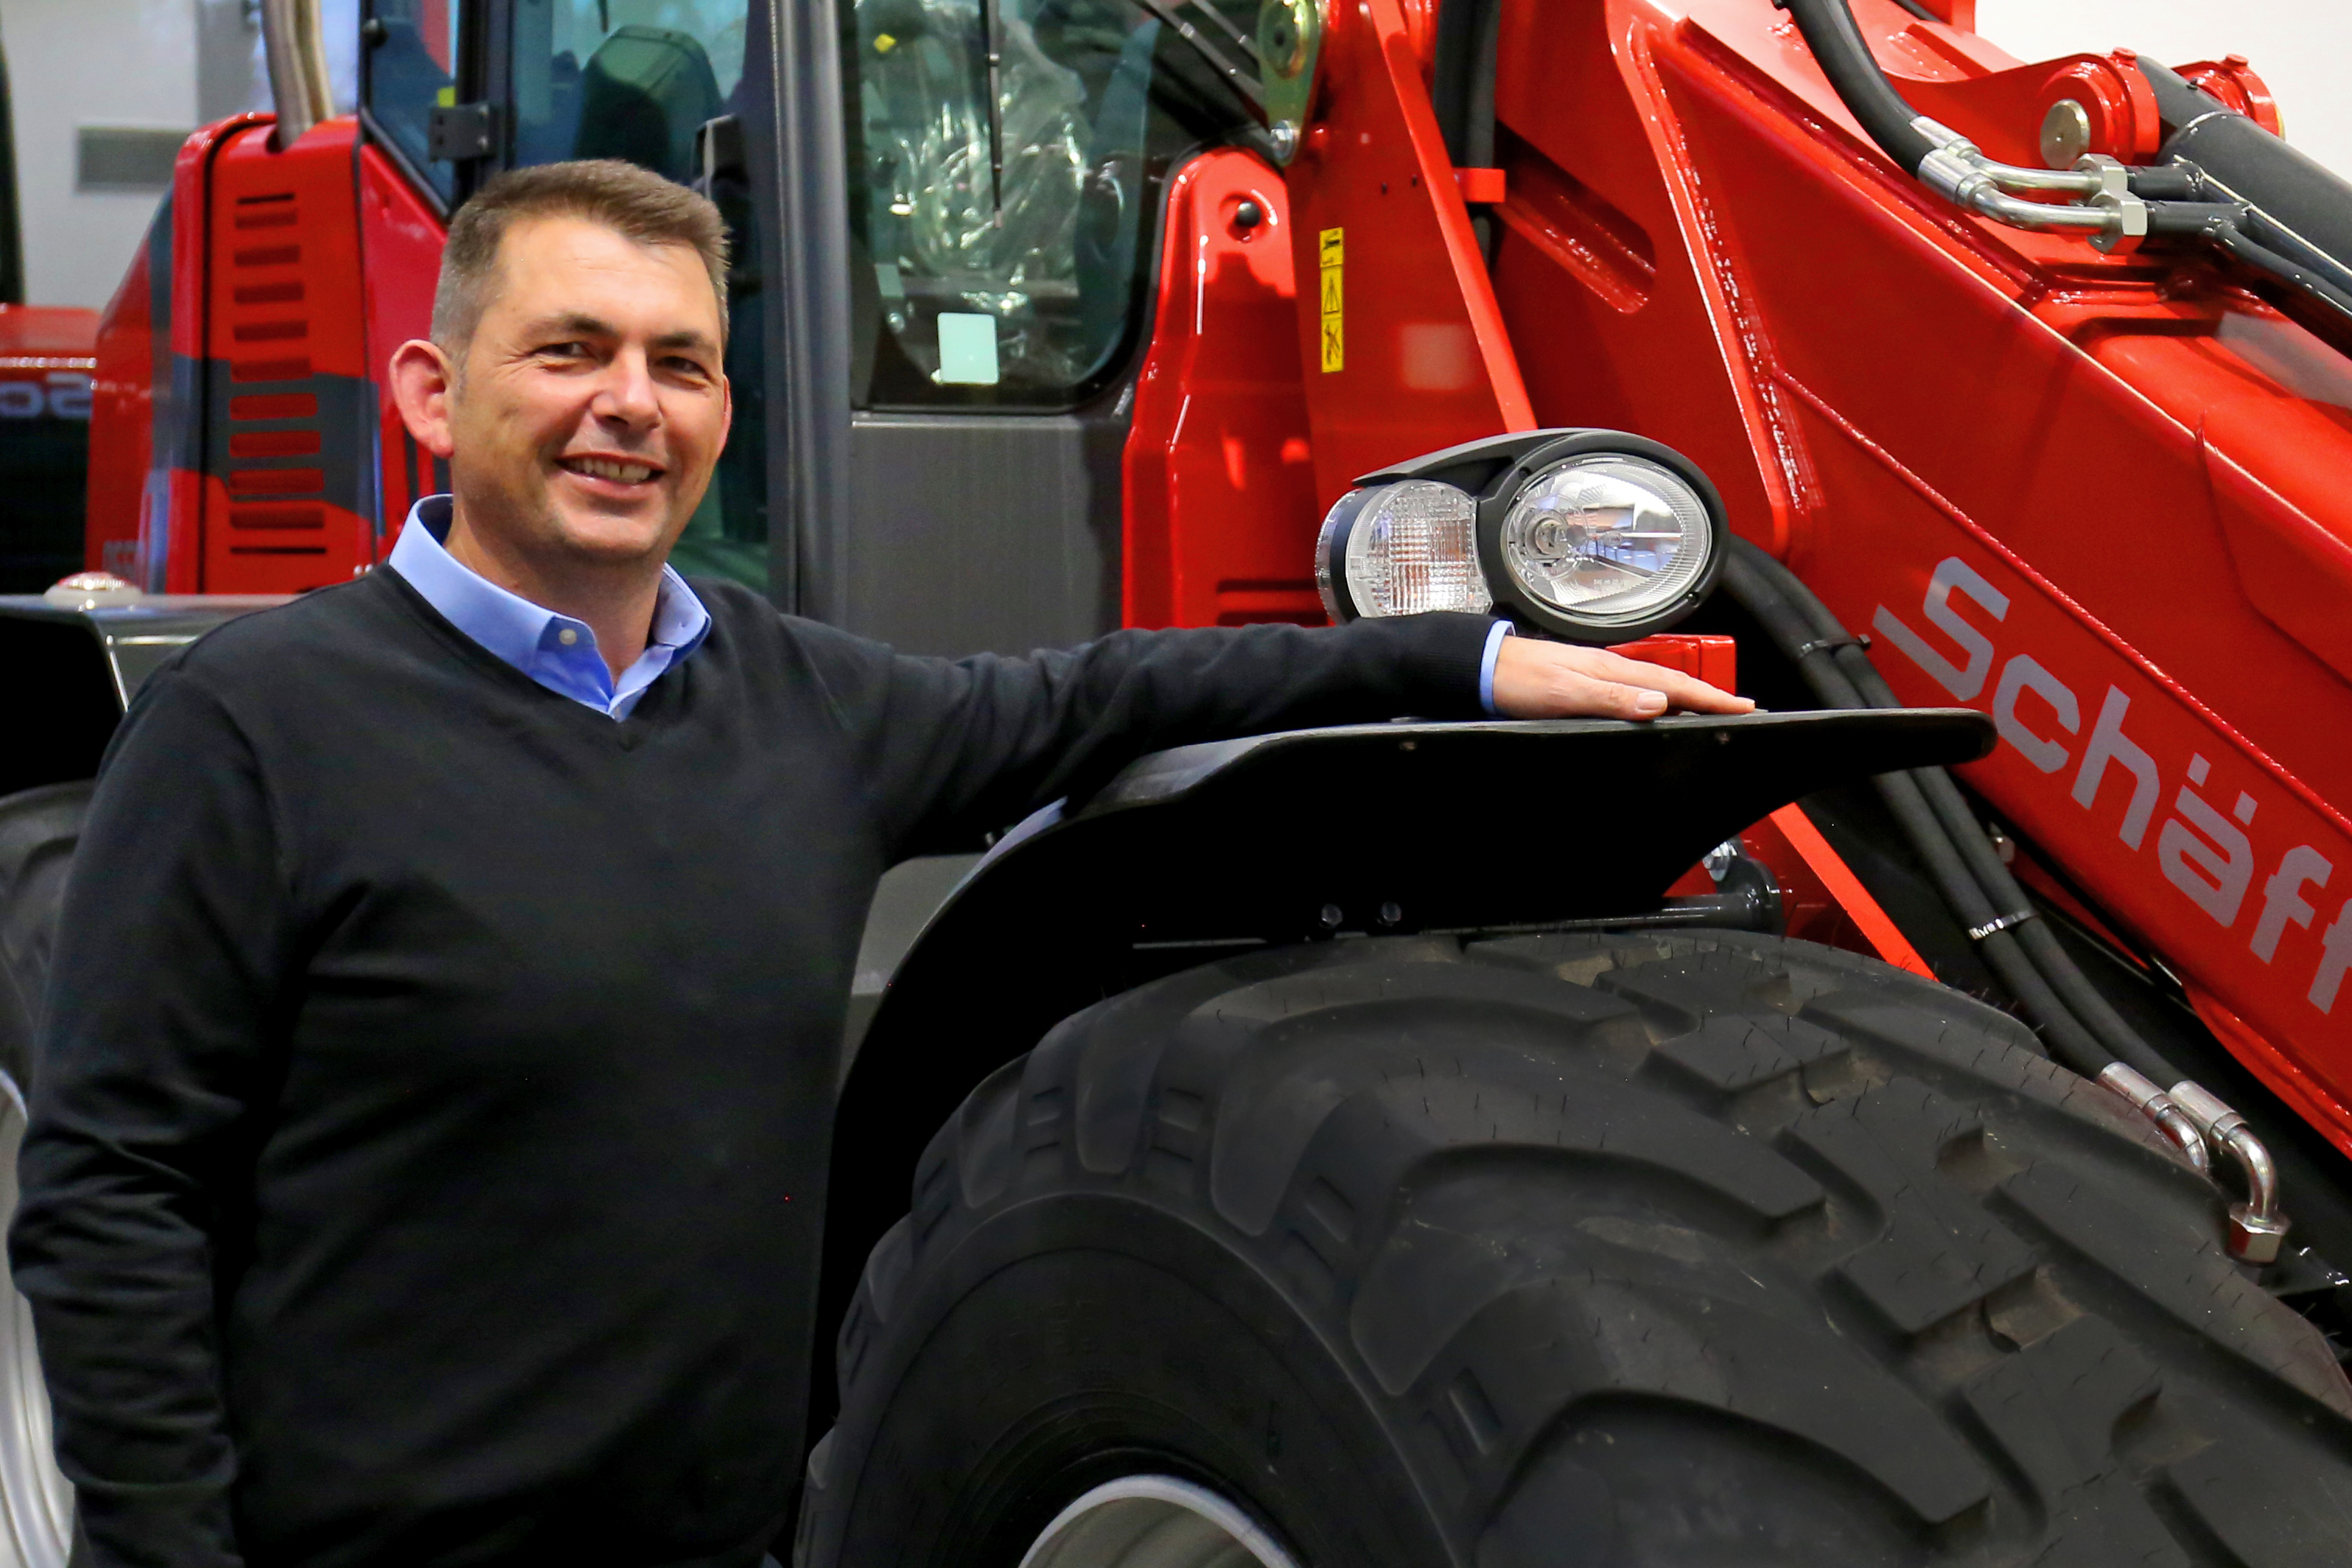 New Schäffer Sales Director role for Paul Gower